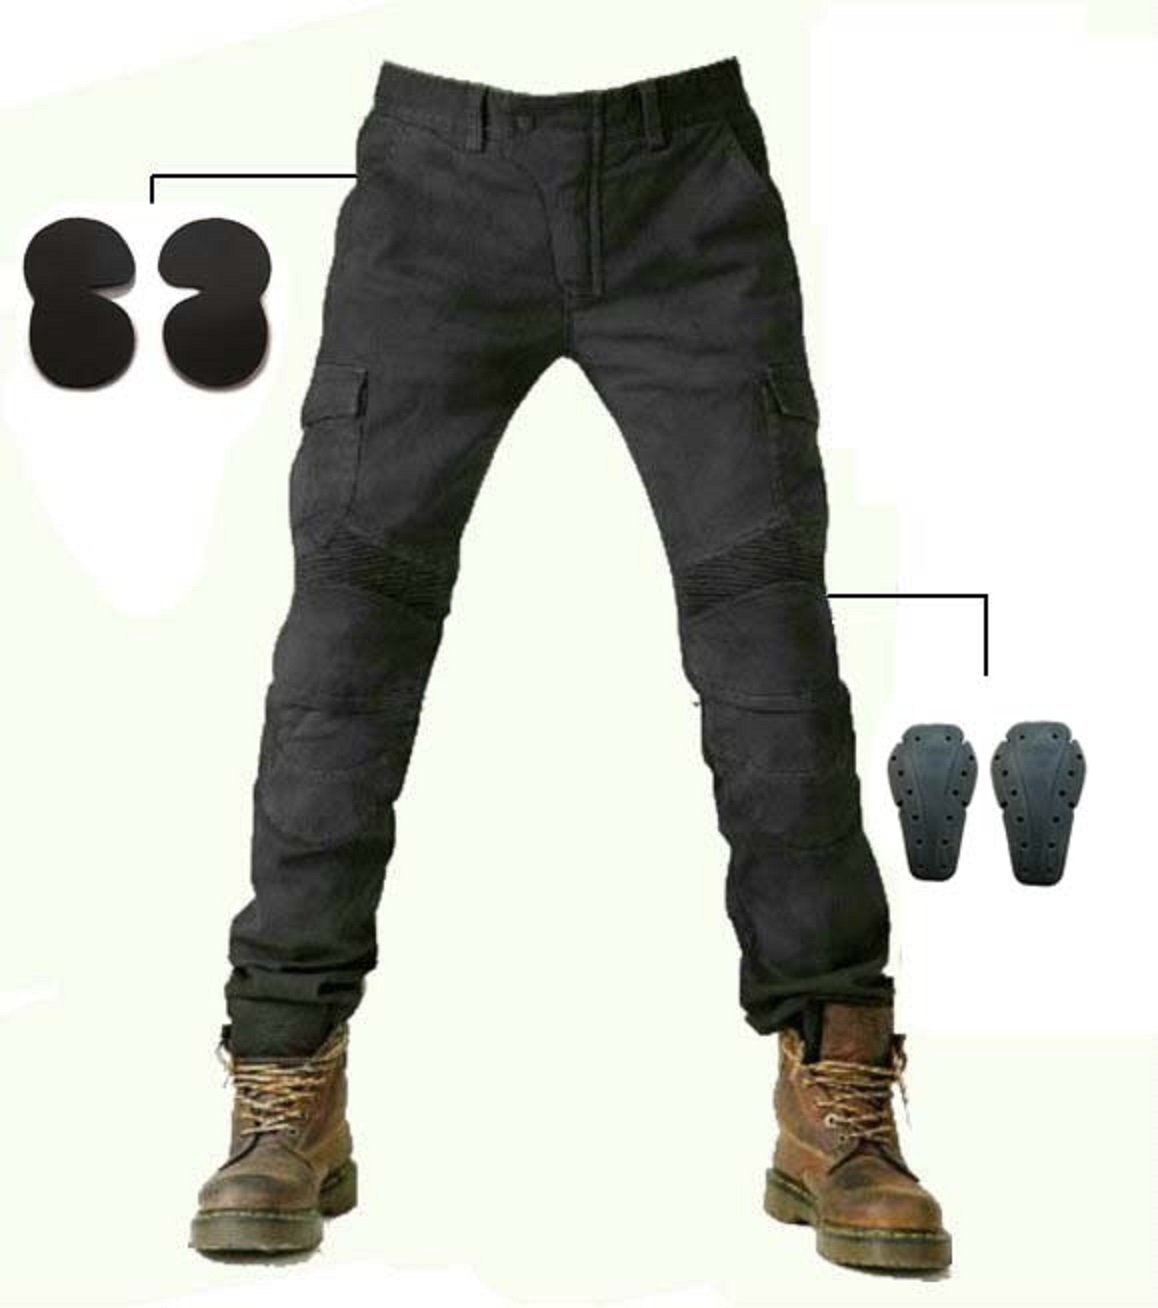 b8d610b3caf Get Quotations · Alpha Rider MOTORCYCLE JEANS WITH PAD DENIM BIKER BLACK  MOTO PANTS COMBAT PANTS Stylish Riding Jeans